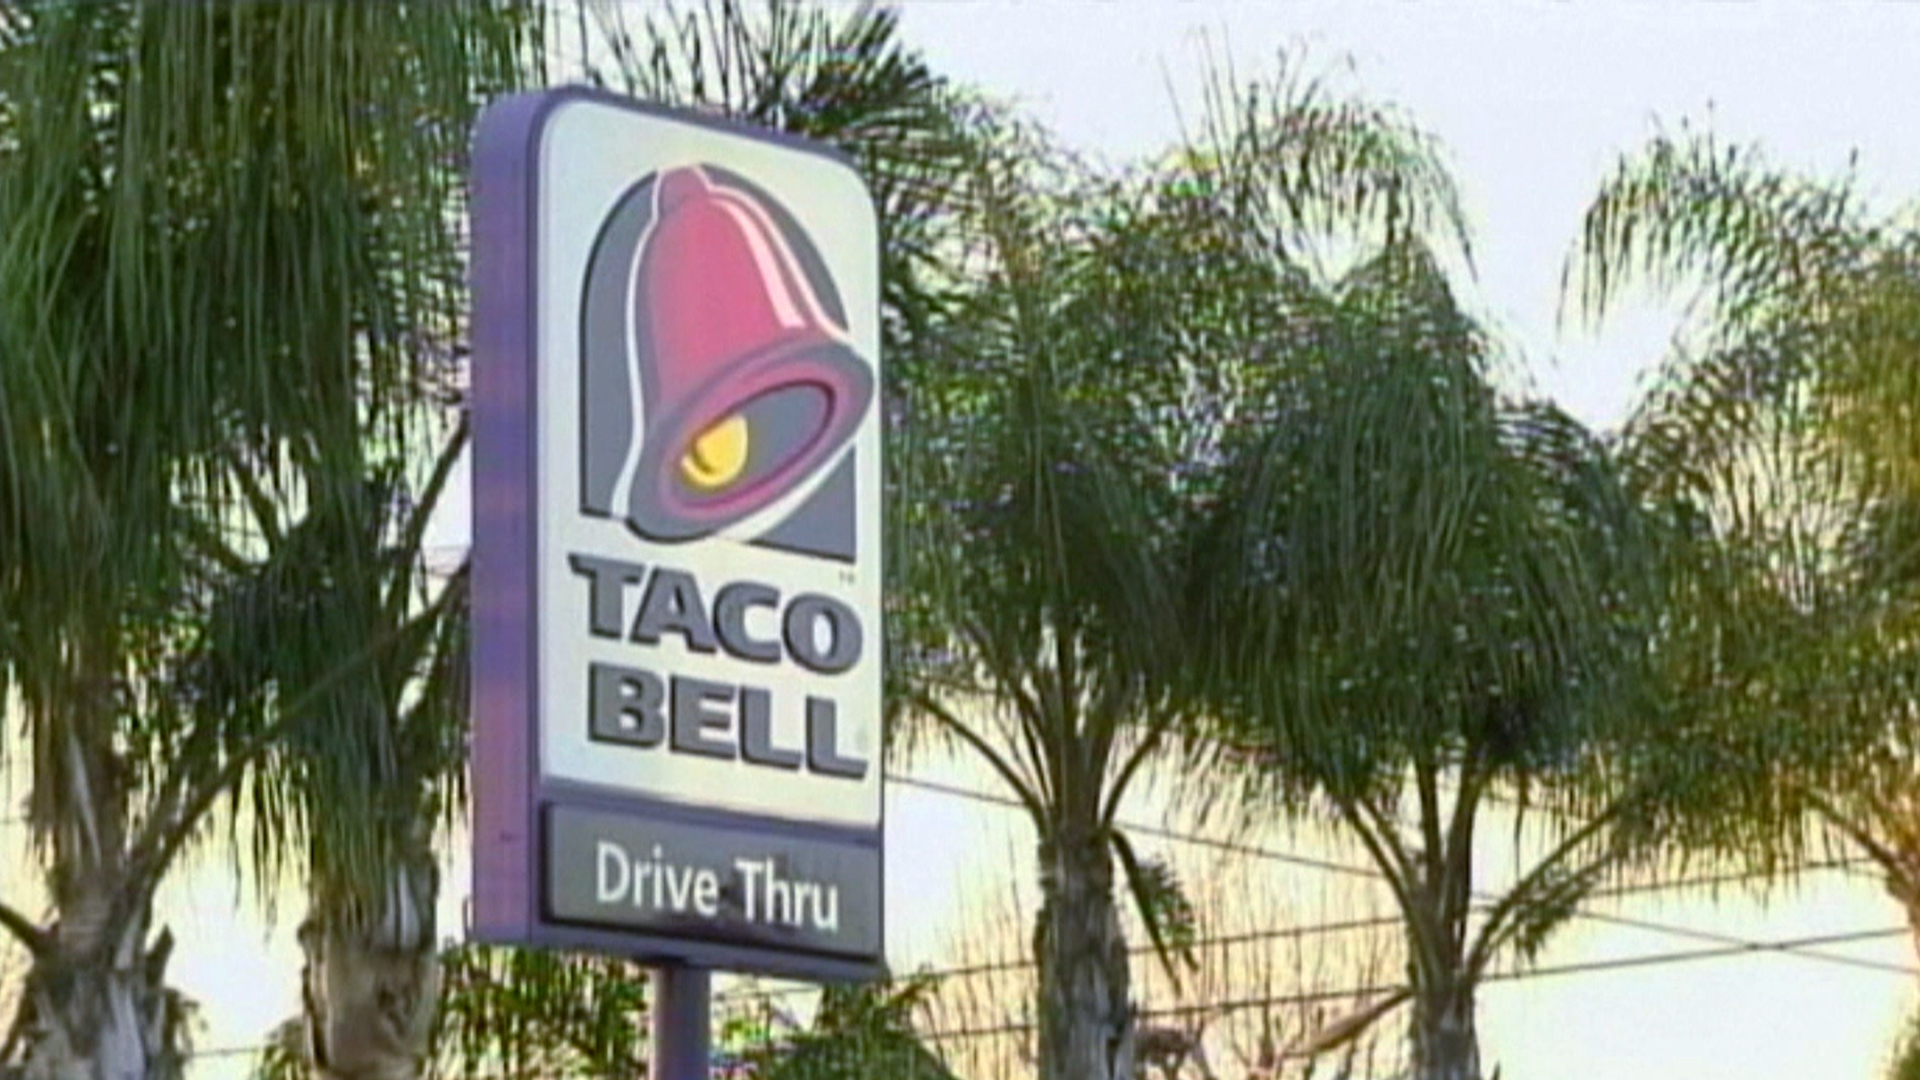 Taco Bell Pizza Hut To Phase Out Artificial Ingredients Auto Split Motor Wiring Http Wwwpic2flycom Daytonsplitphase Phasing